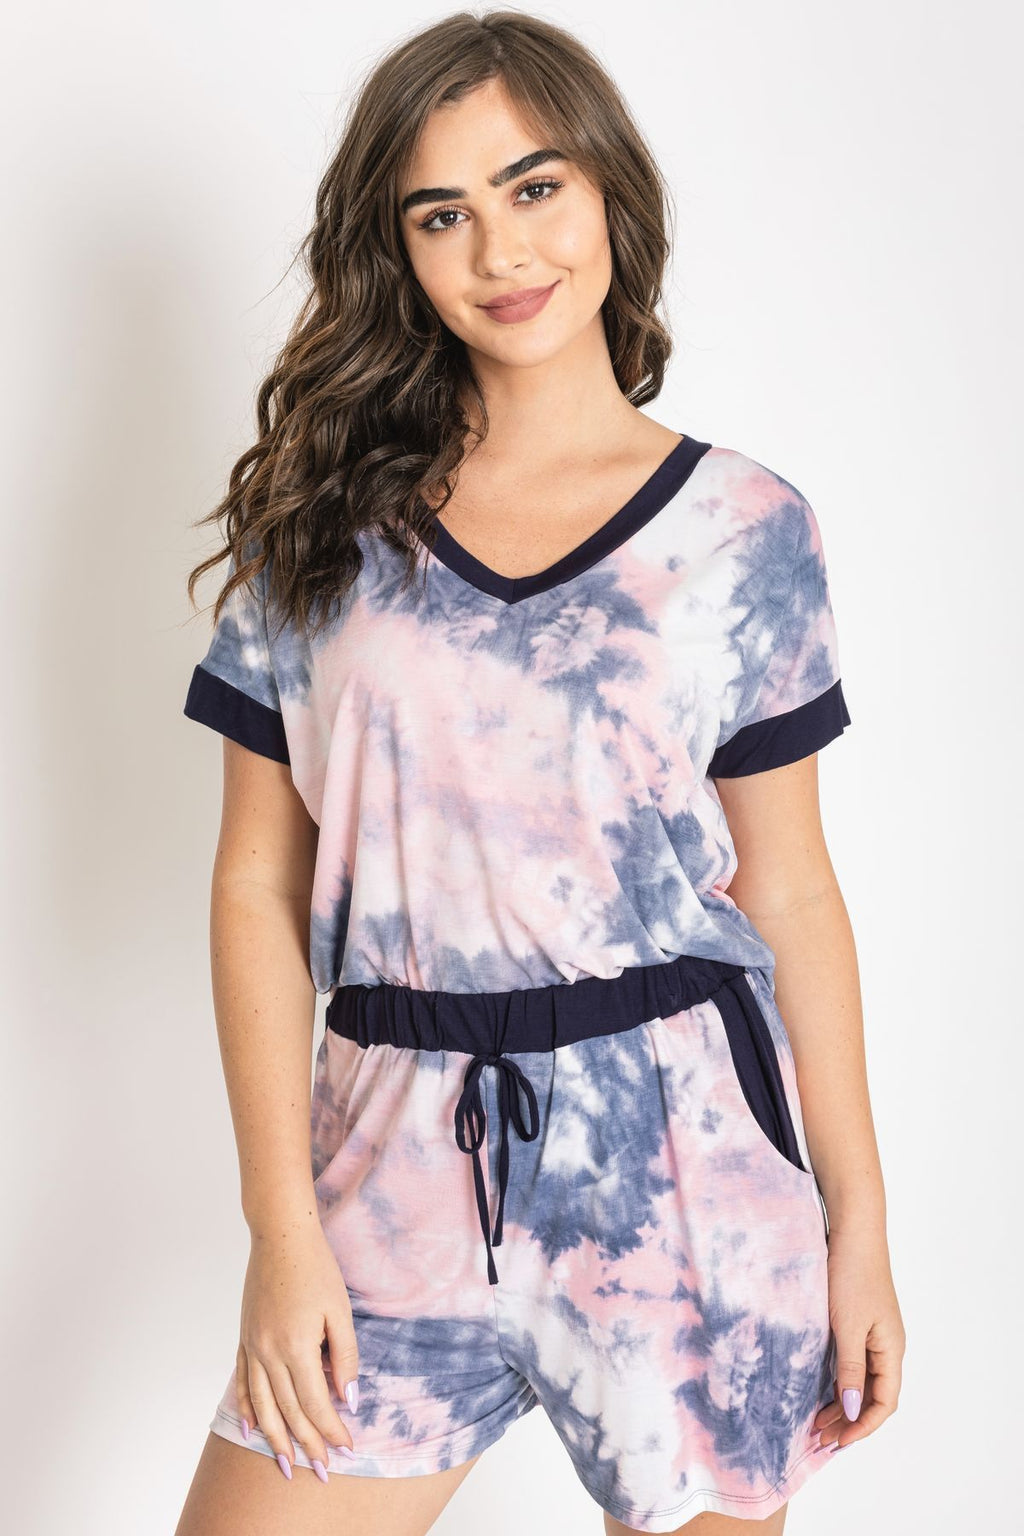 Purple Lavender Tie Dye V-Neck Top & Shorts Set